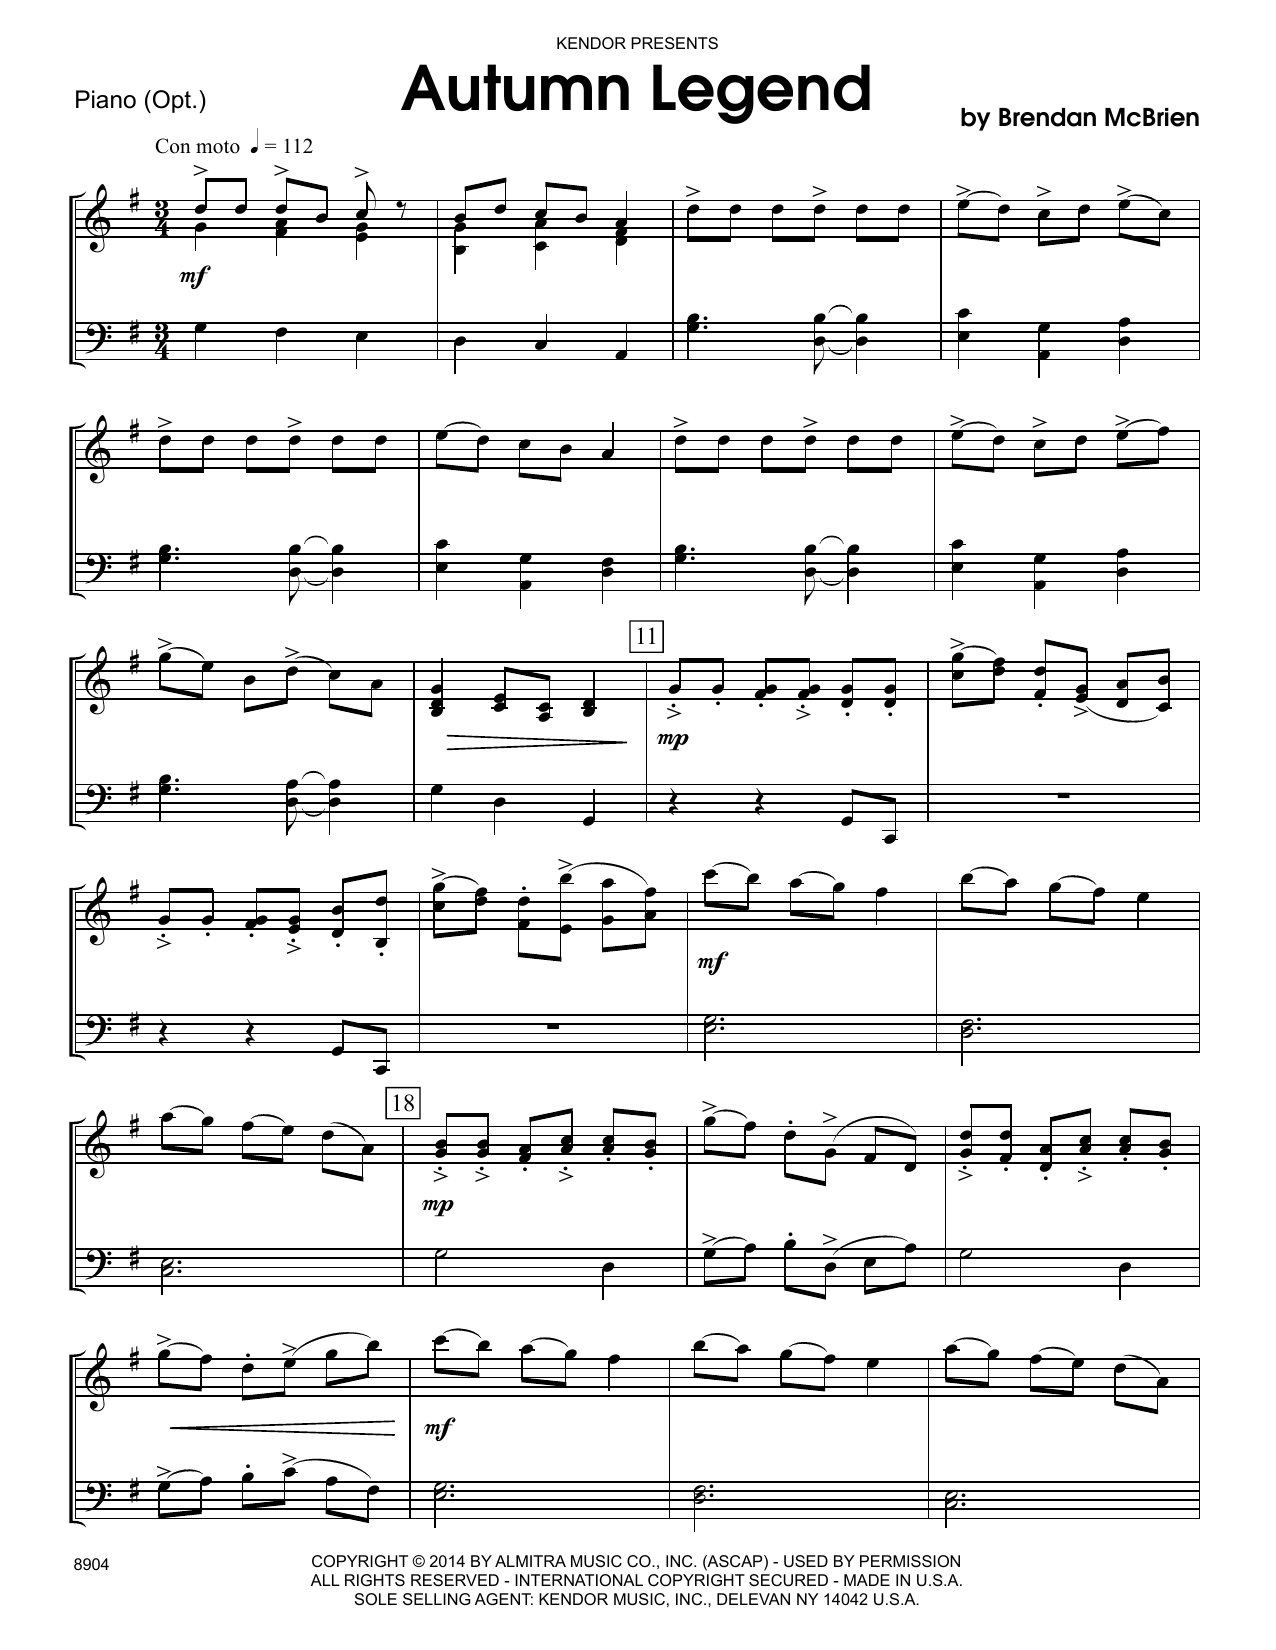 Brendan McBrien Autumn Legend - Piano Accompaniment sheet music notes and chords. Download Printable PDF.